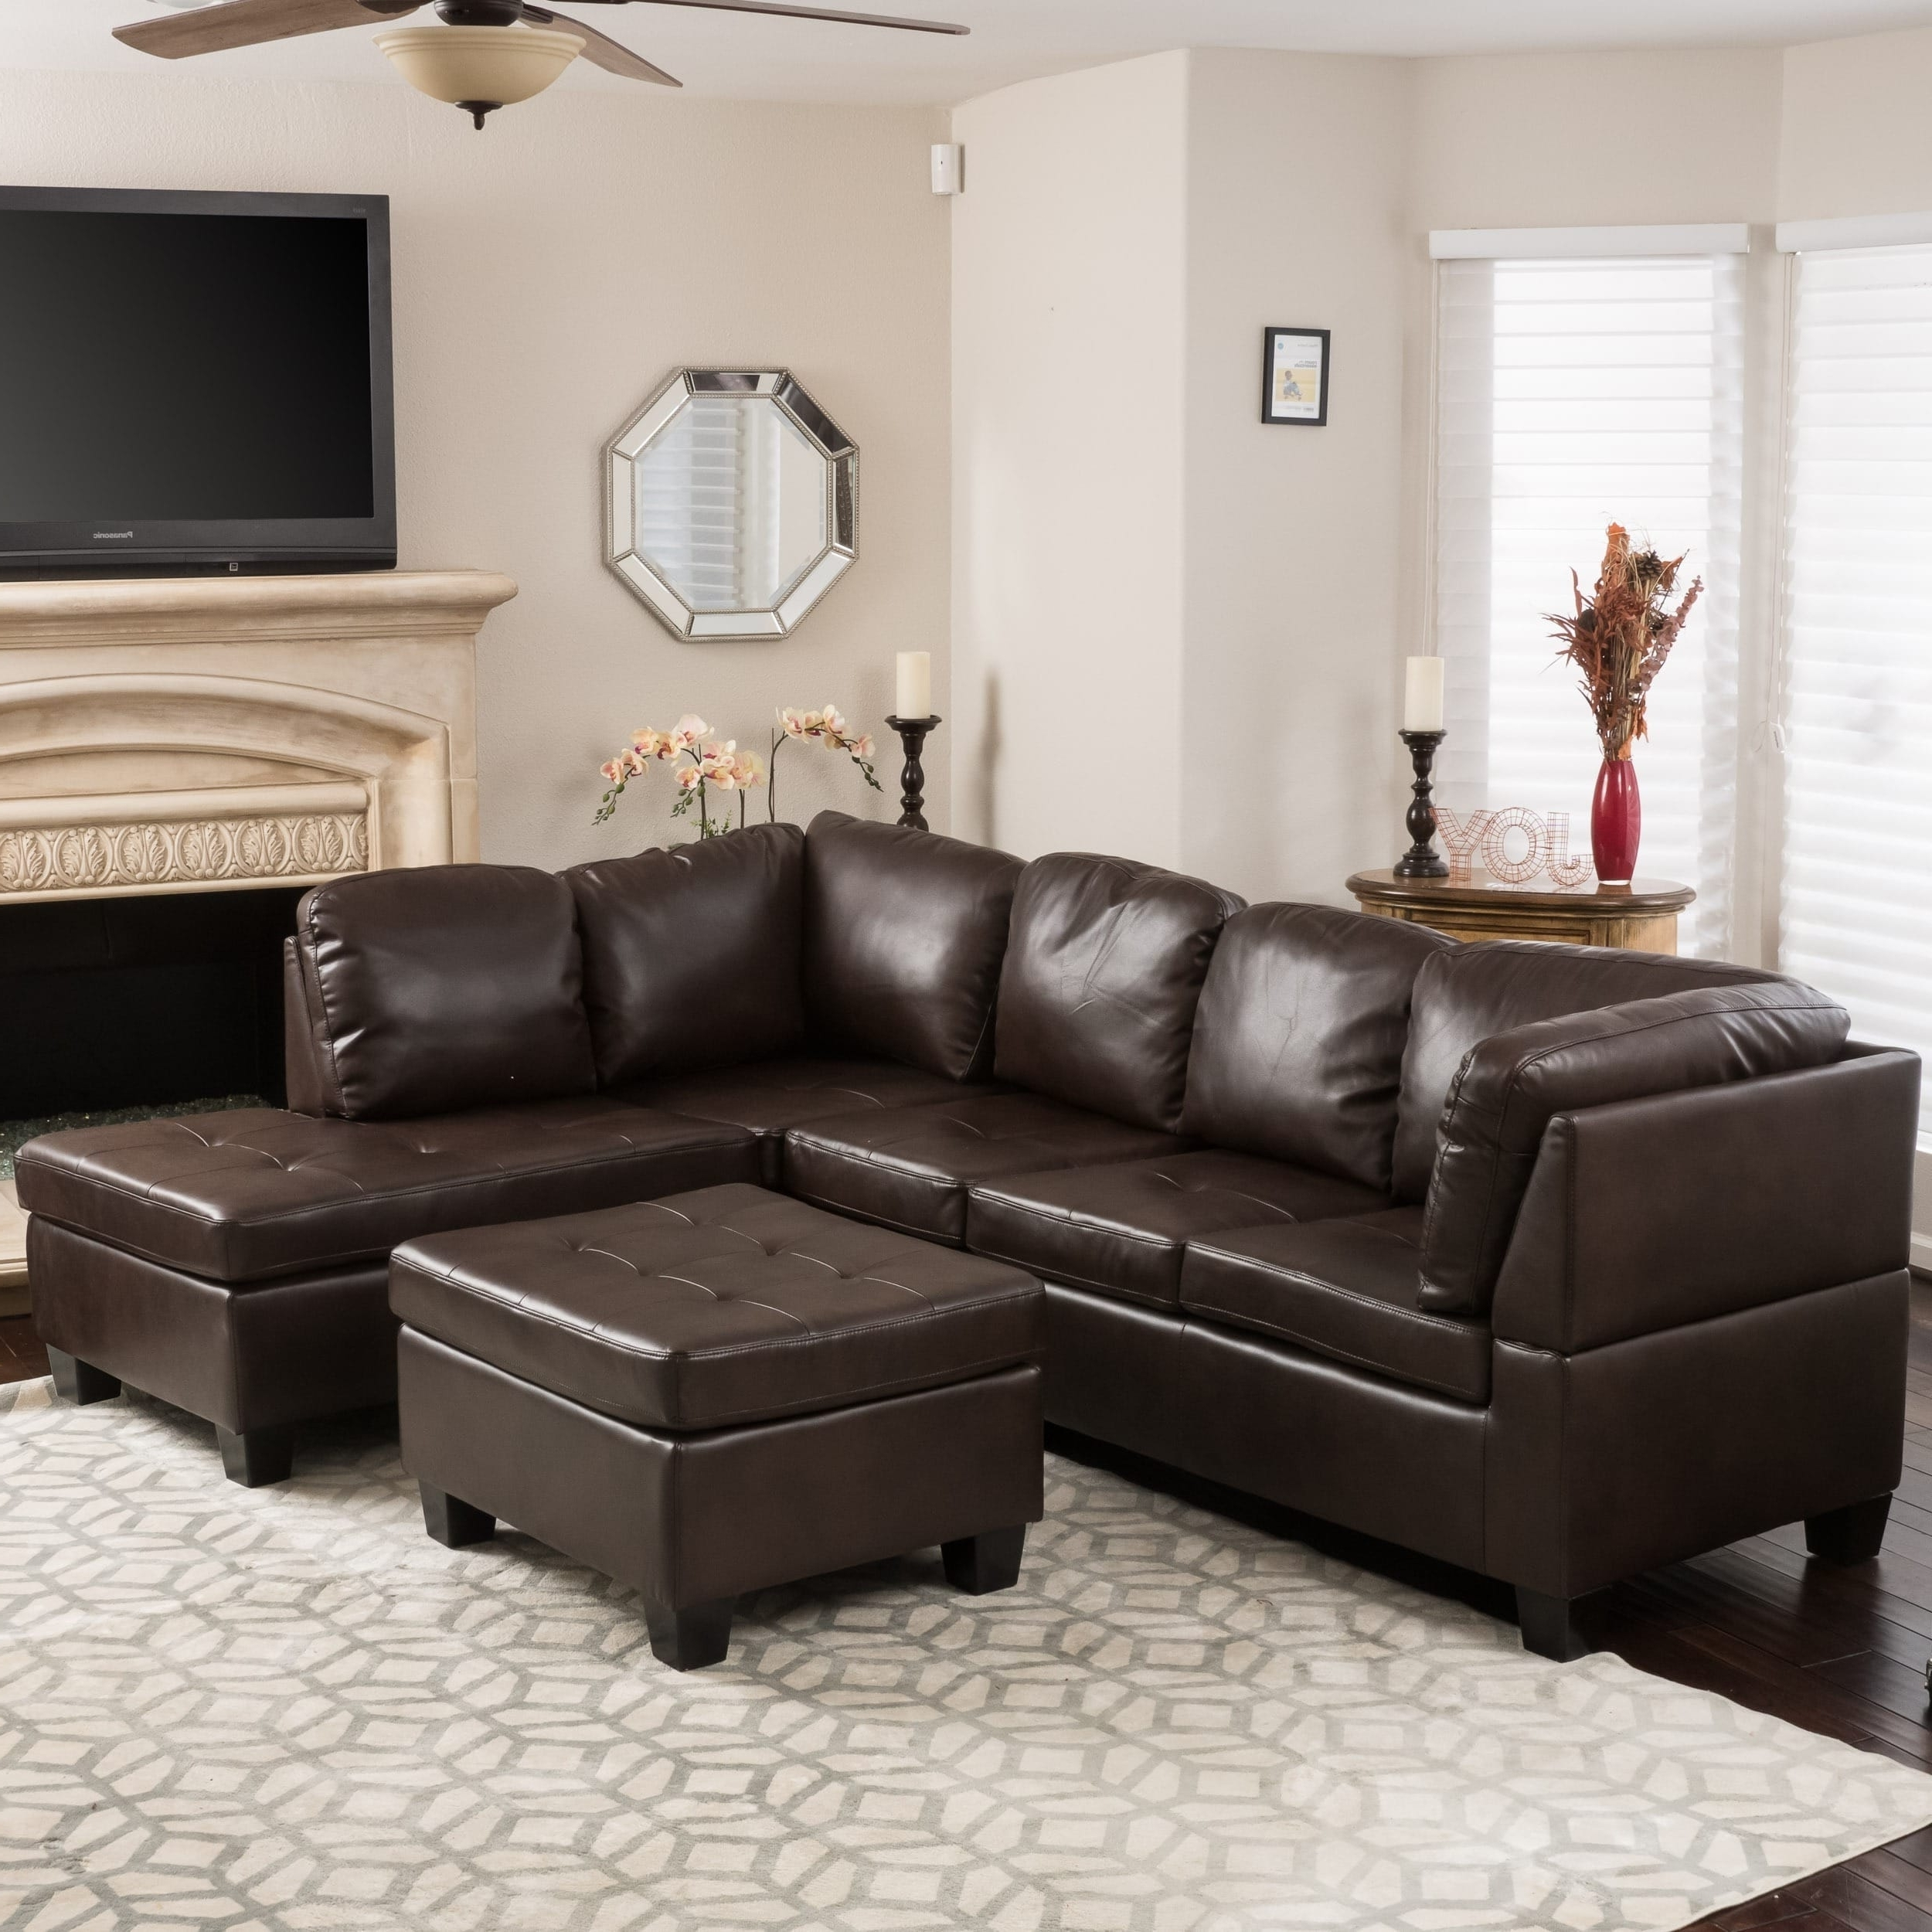 Canterbury 3 Piece Pu Leather Sectional Sofa Setchristopher With Regard To Most Popular Leather Sectional Sofas (View 3 of 20)